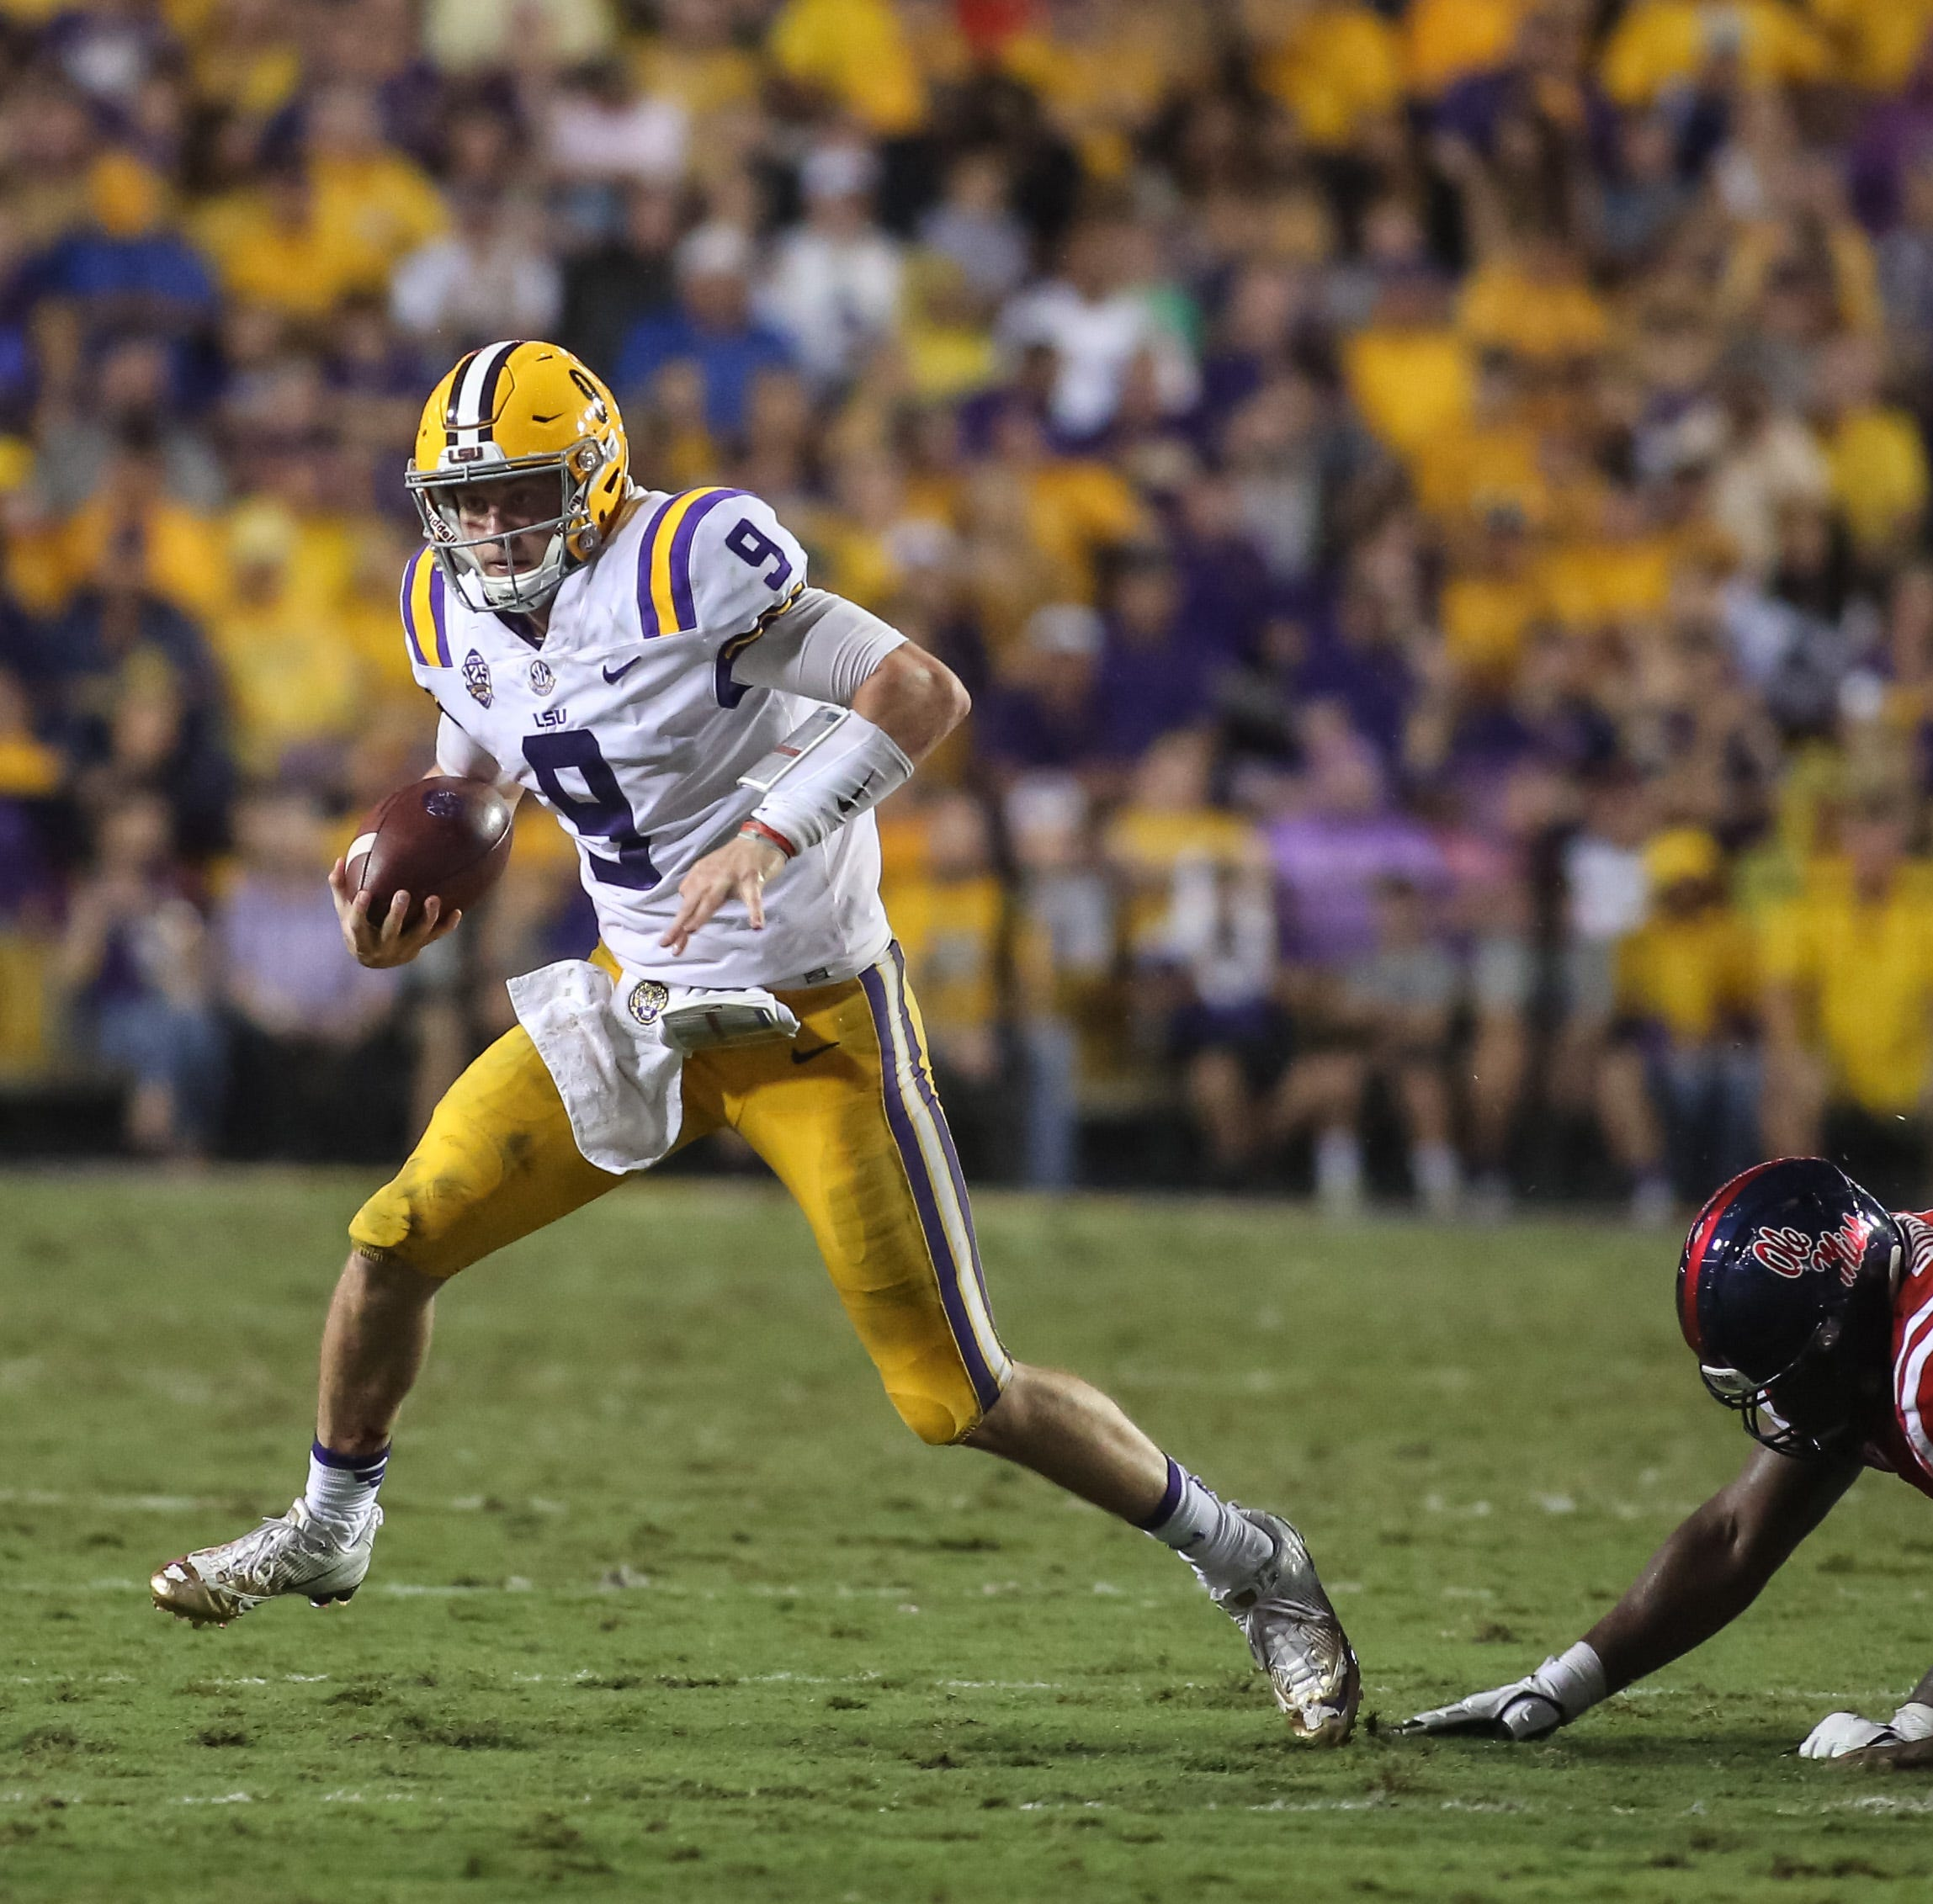 Ole Miss sputters against No. 6 LSU as Rebels fall to 0-2 in SEC play